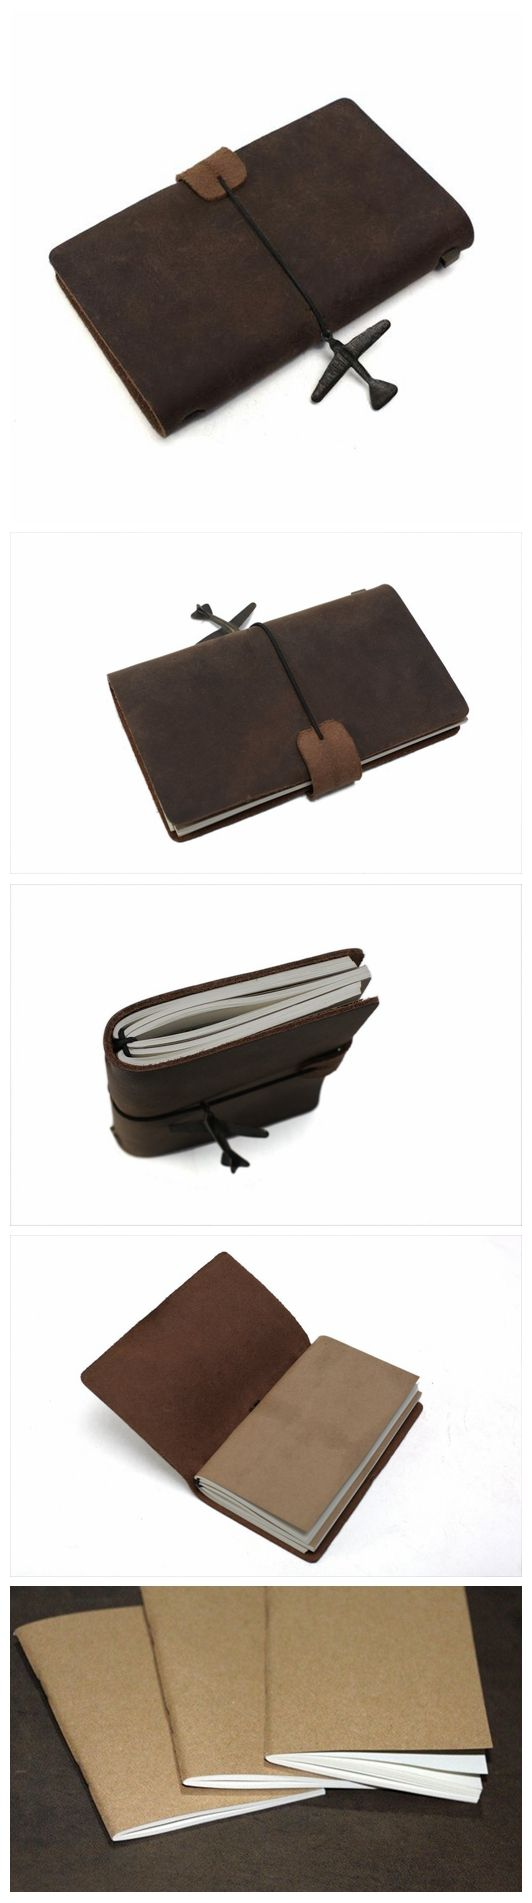 Handmade Leather Journal, Journals for Men, Leather Notebook, Rustic Leather Diary 00002